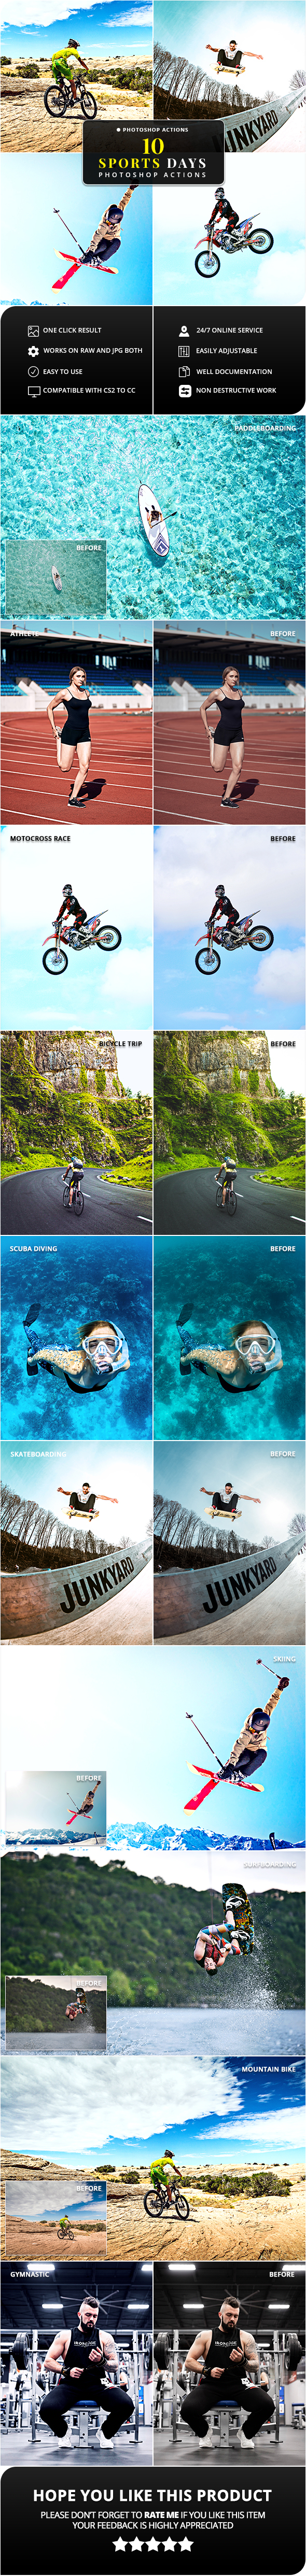 10 Sport Days Photoshop Actions